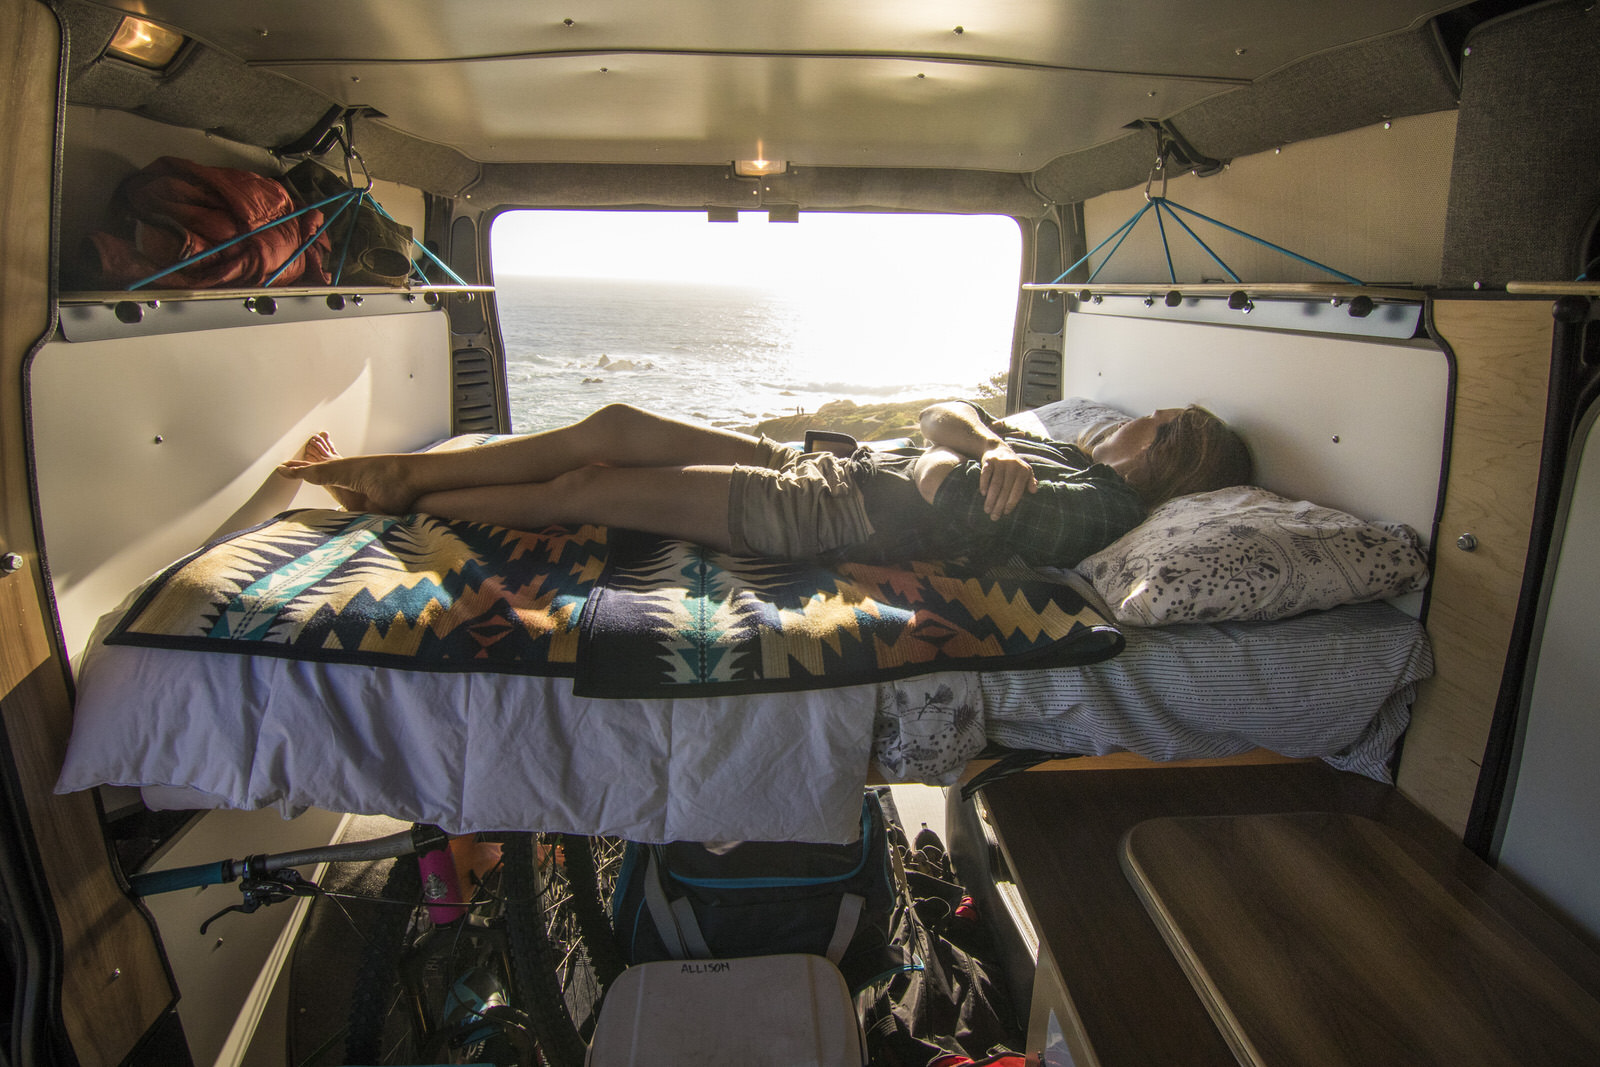 Laying down on the Wafarer Van bed with a great view of the ocean.